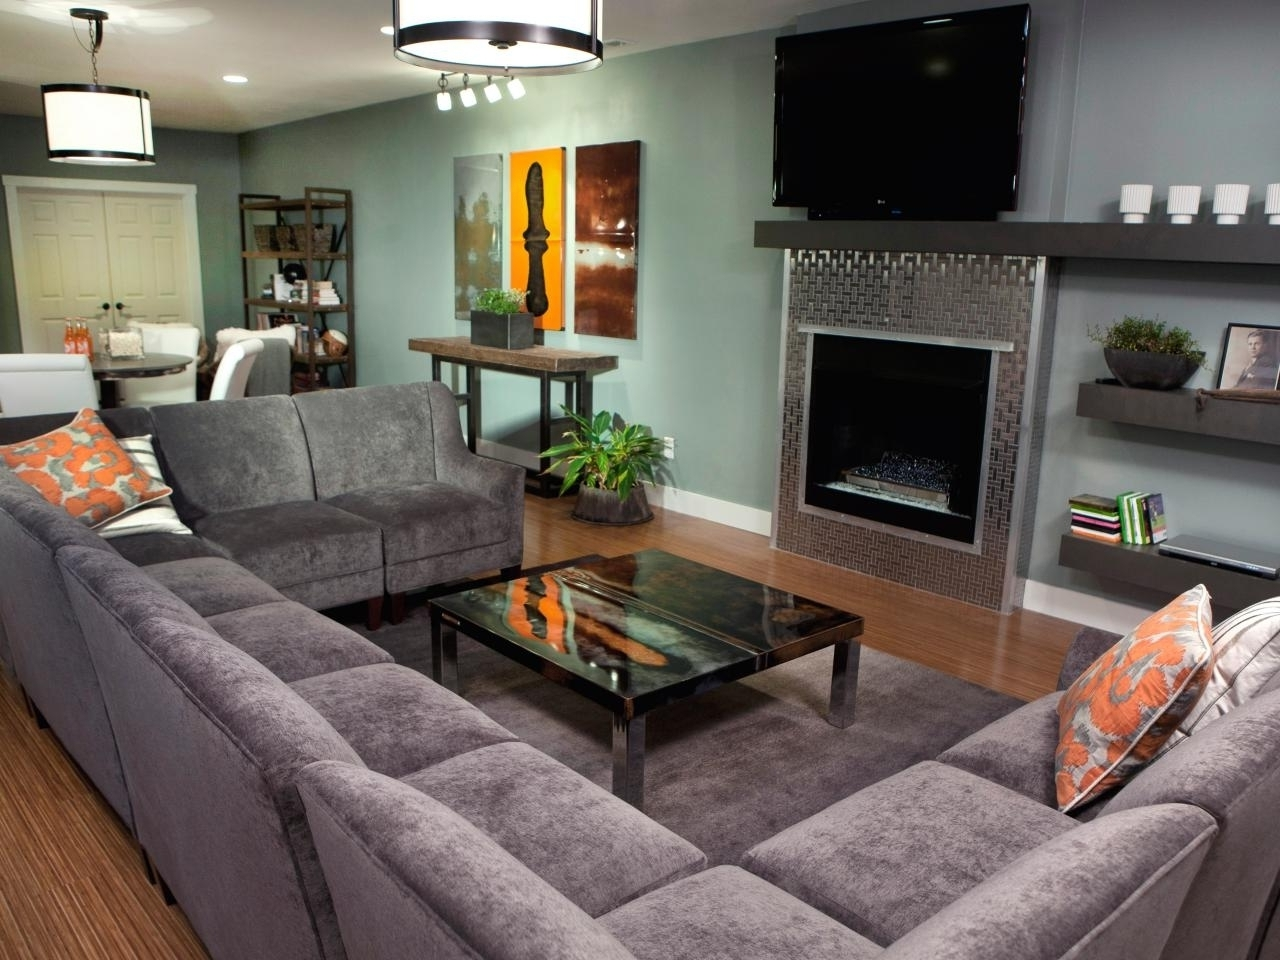 U Shaped Sectional Sofas Regarding Current Sofa : U Shaped Sofa Sectional Has One Of The Best Kind Of Other (View 13 of 20)